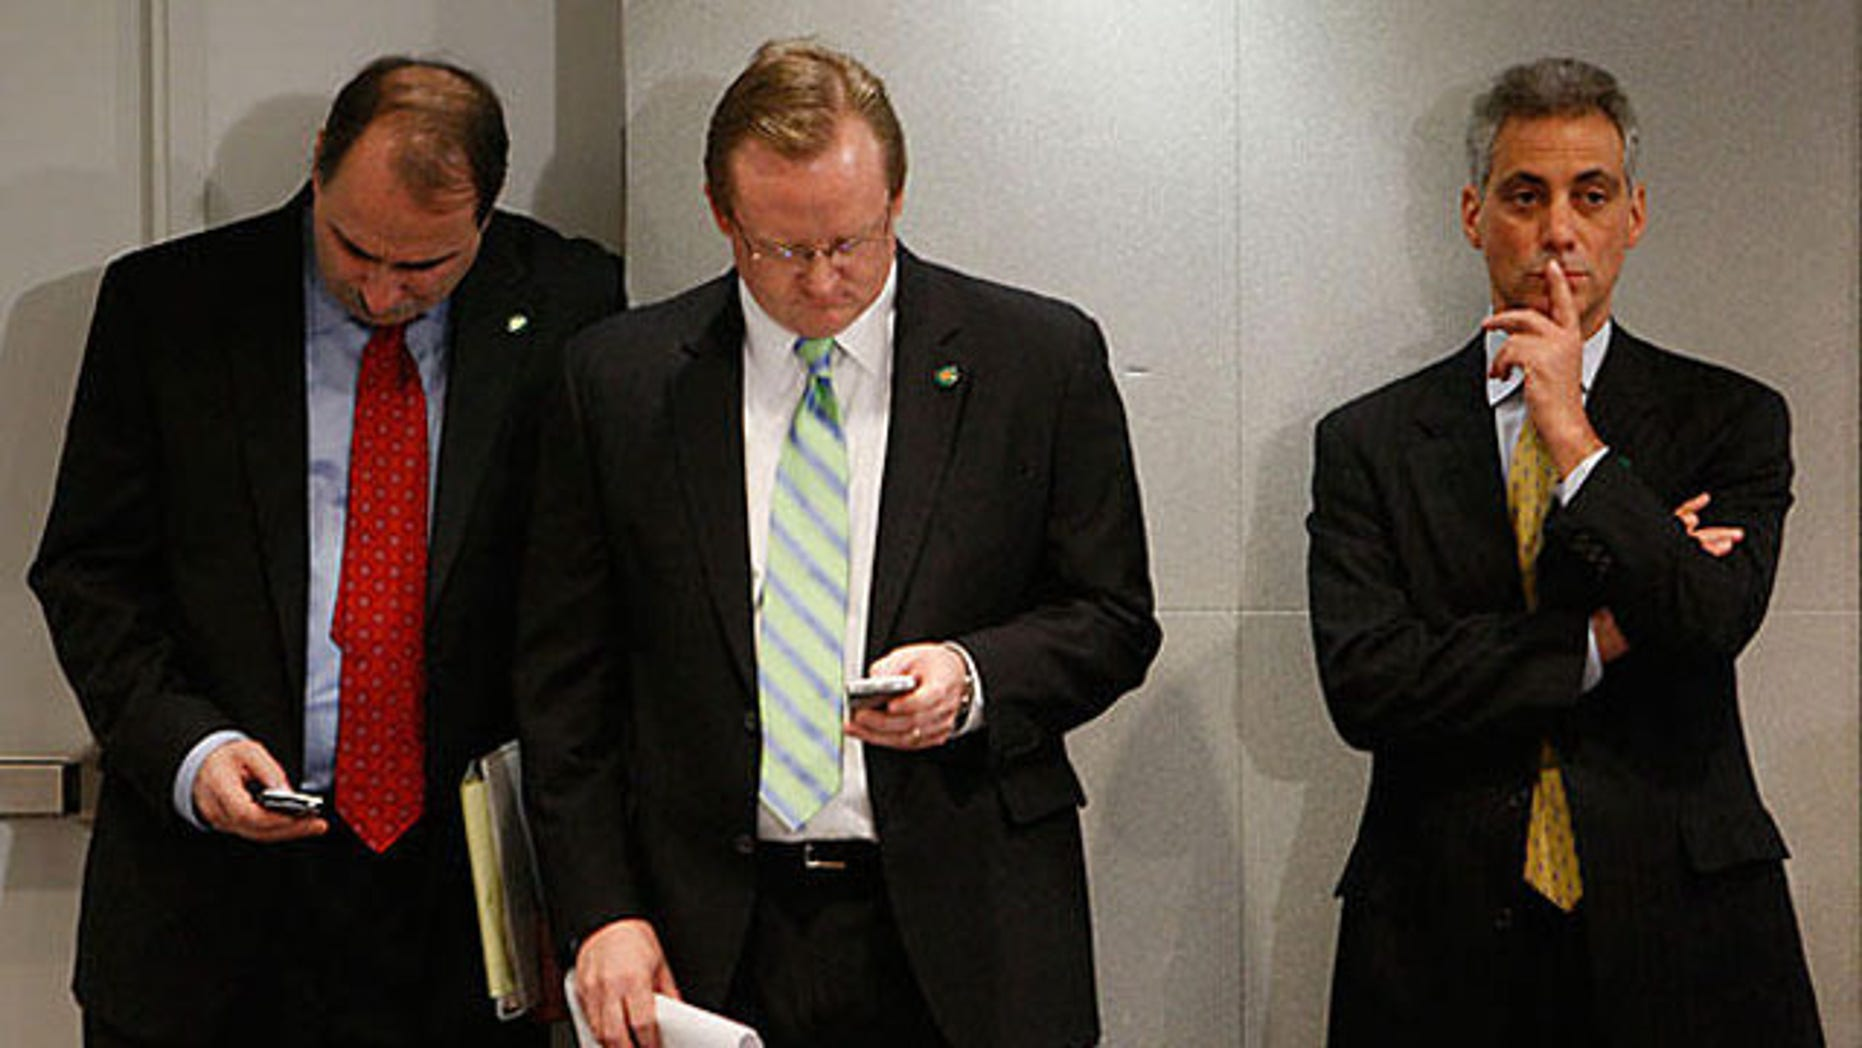 Shown in this January 2009 photo are David Axelrod, left, Robert Gibbs, middle, and Rahm Emanuel. (AP Photo)